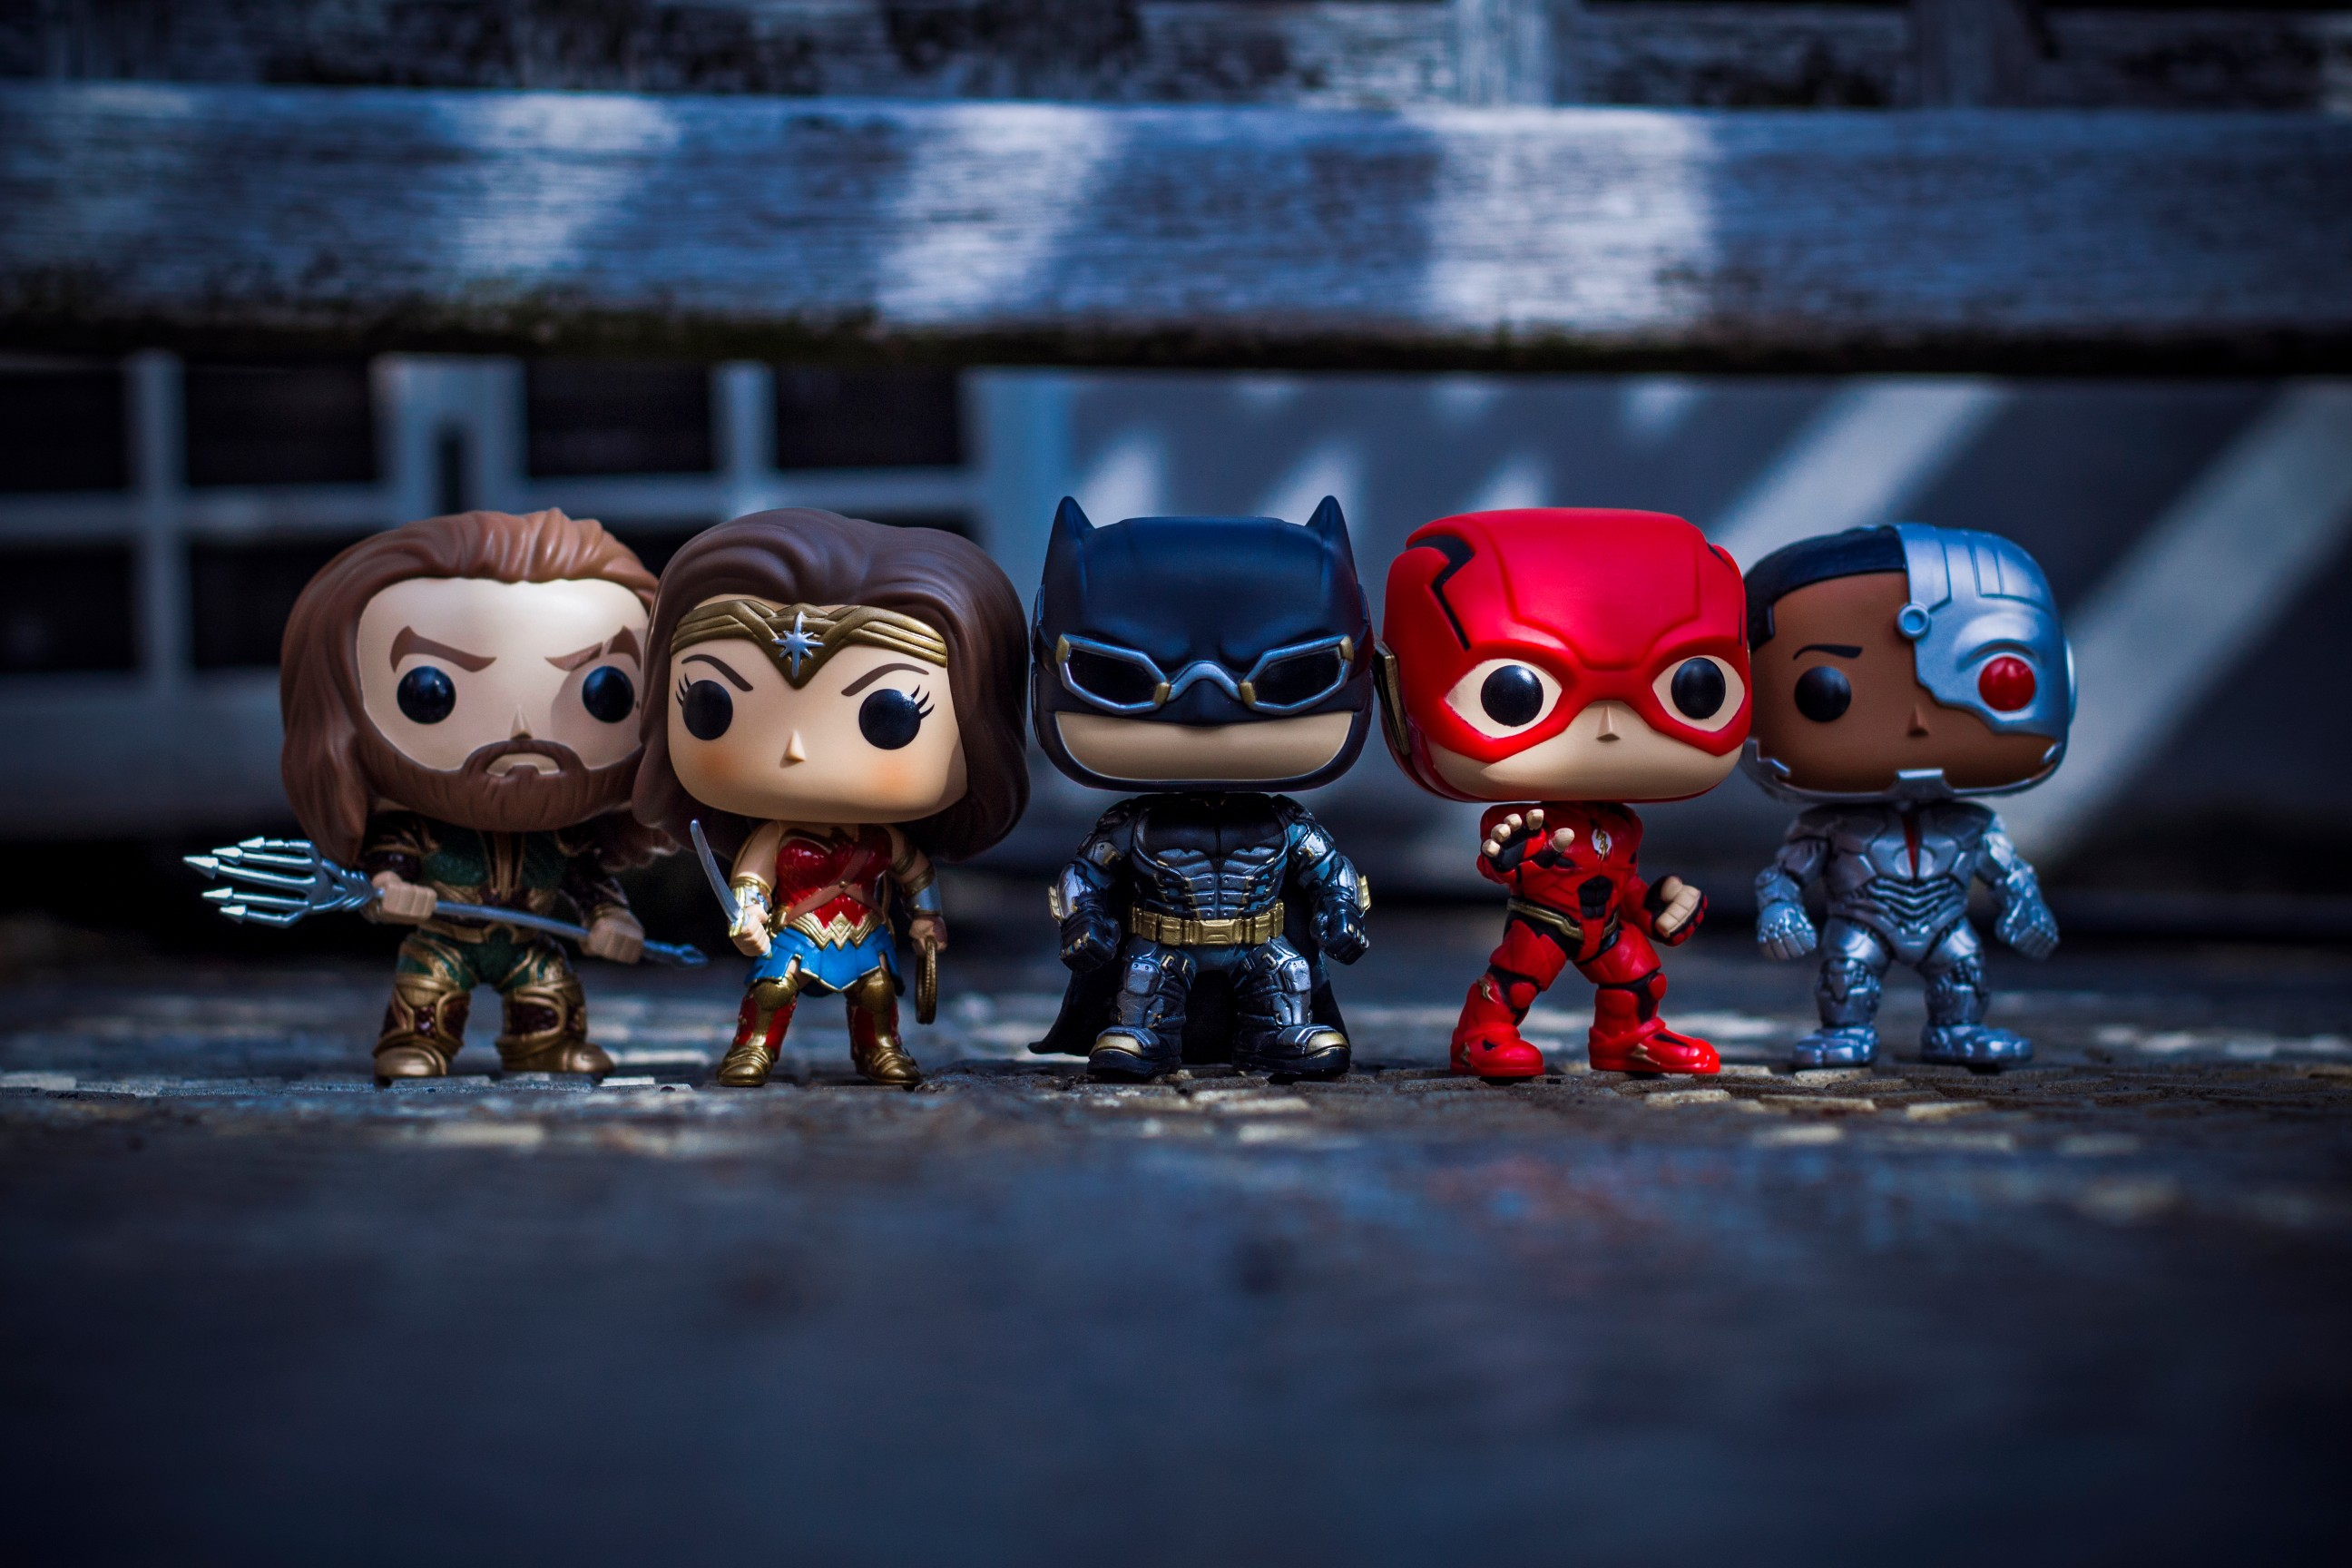 Express your love with Funko Collectibles this festive season